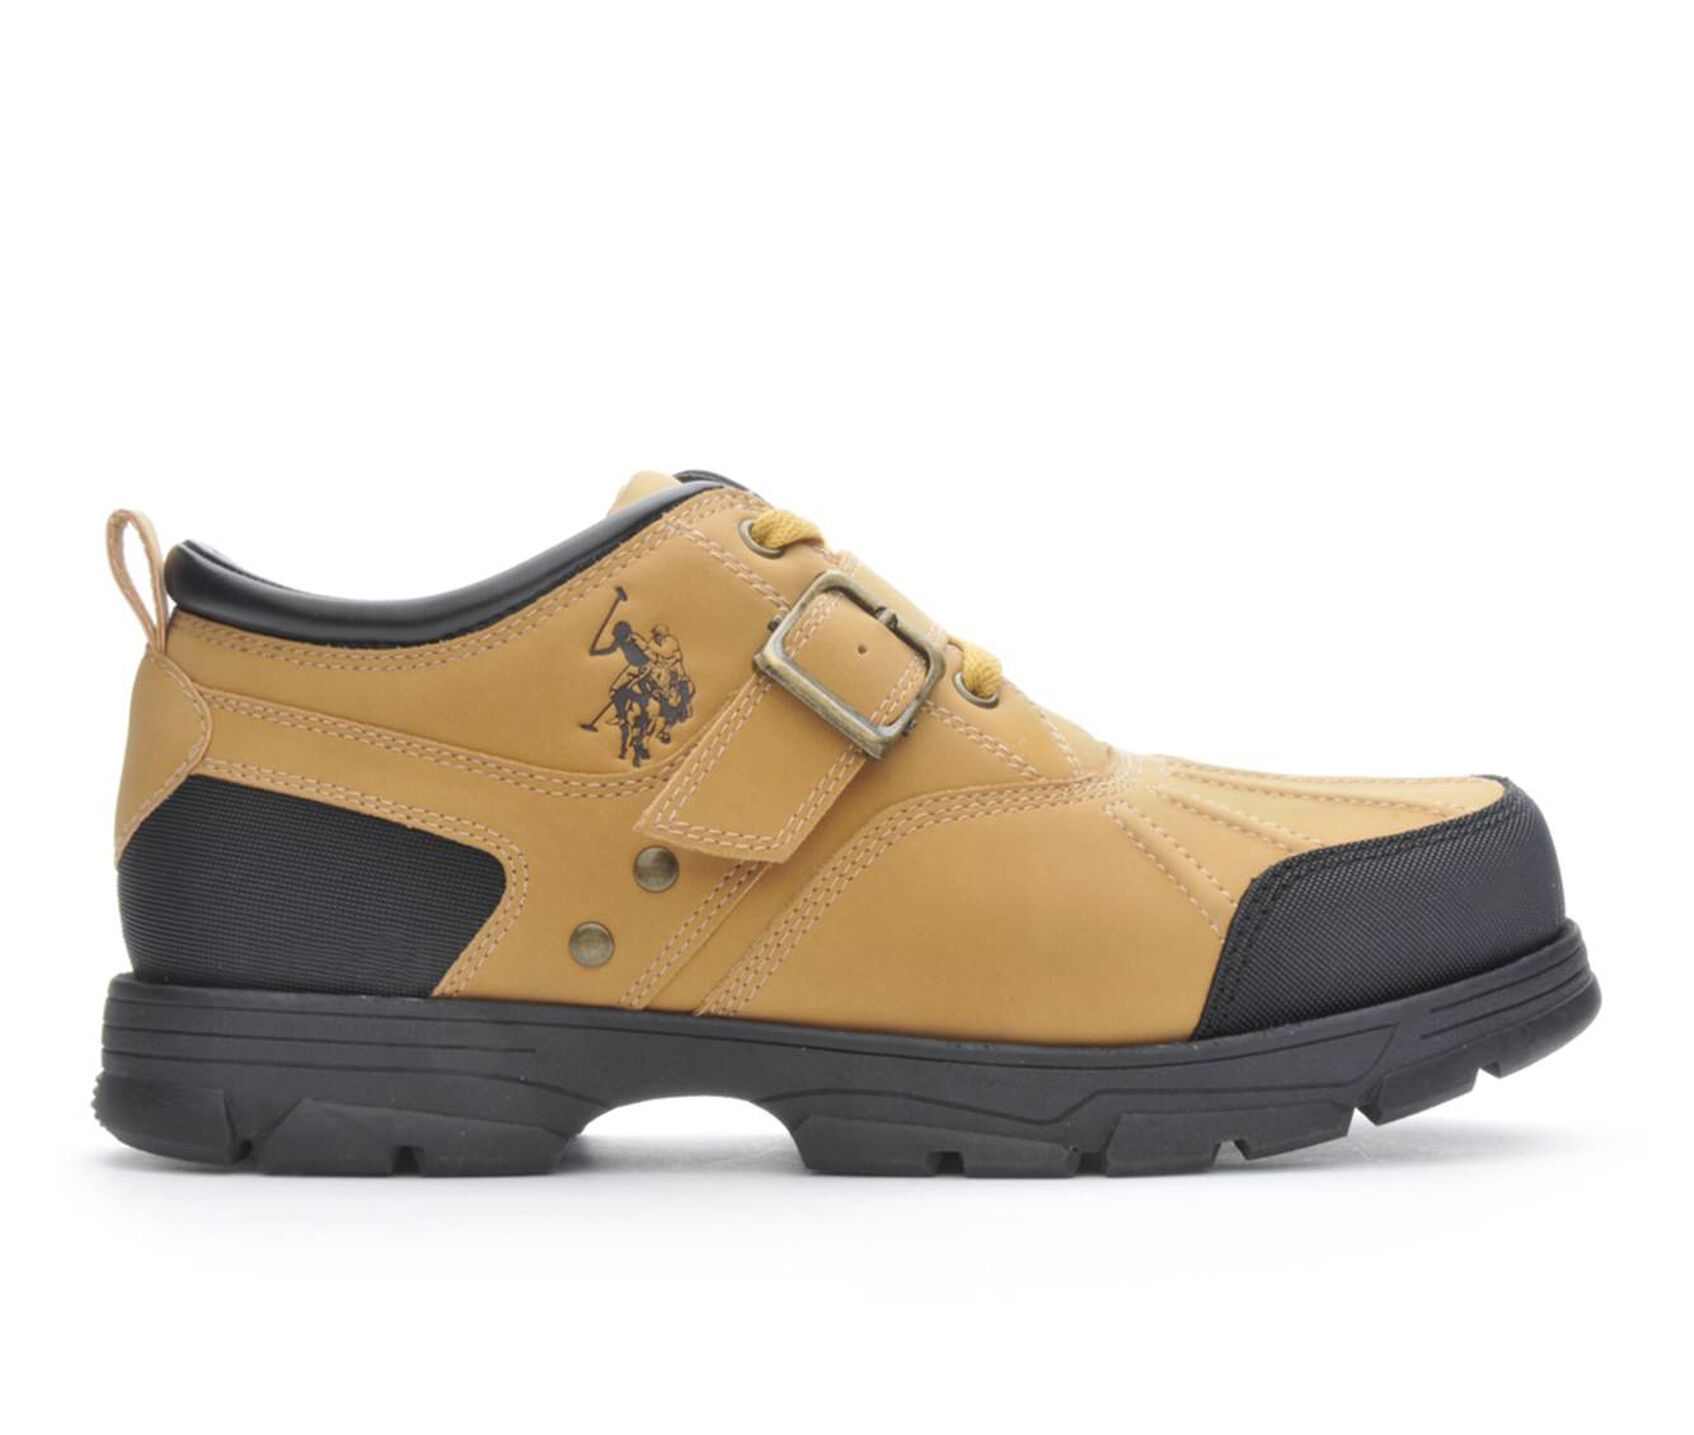 us polo boots 28 images 48 us polo assn boots us polo assn s work us polo assn crusade faux. Black Bedroom Furniture Sets. Home Design Ideas